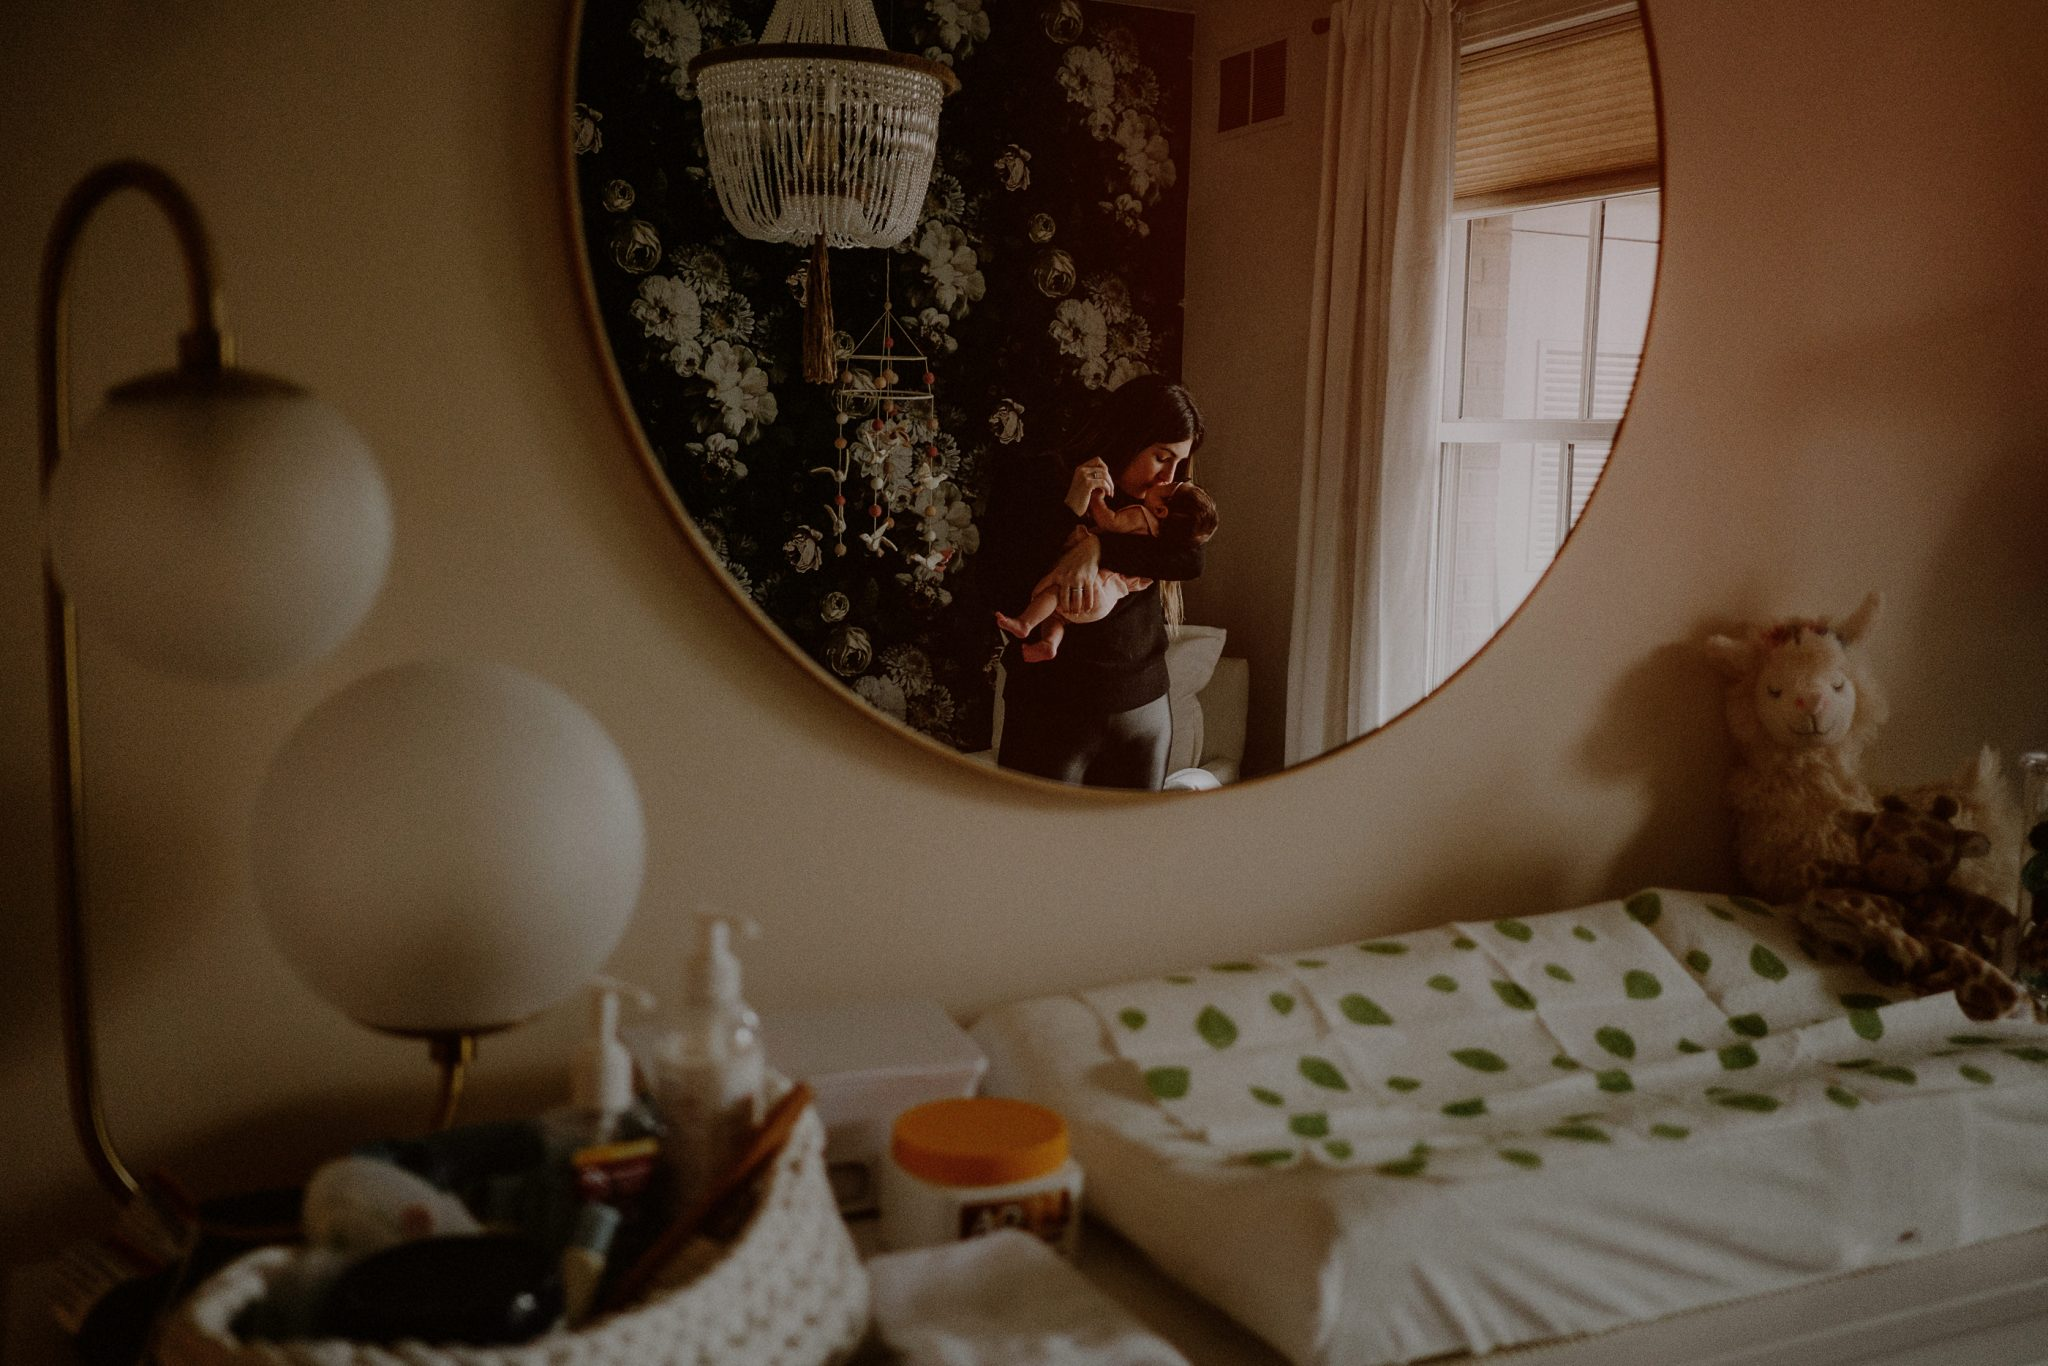 mother holding baby in reflection of mirror in baby's room